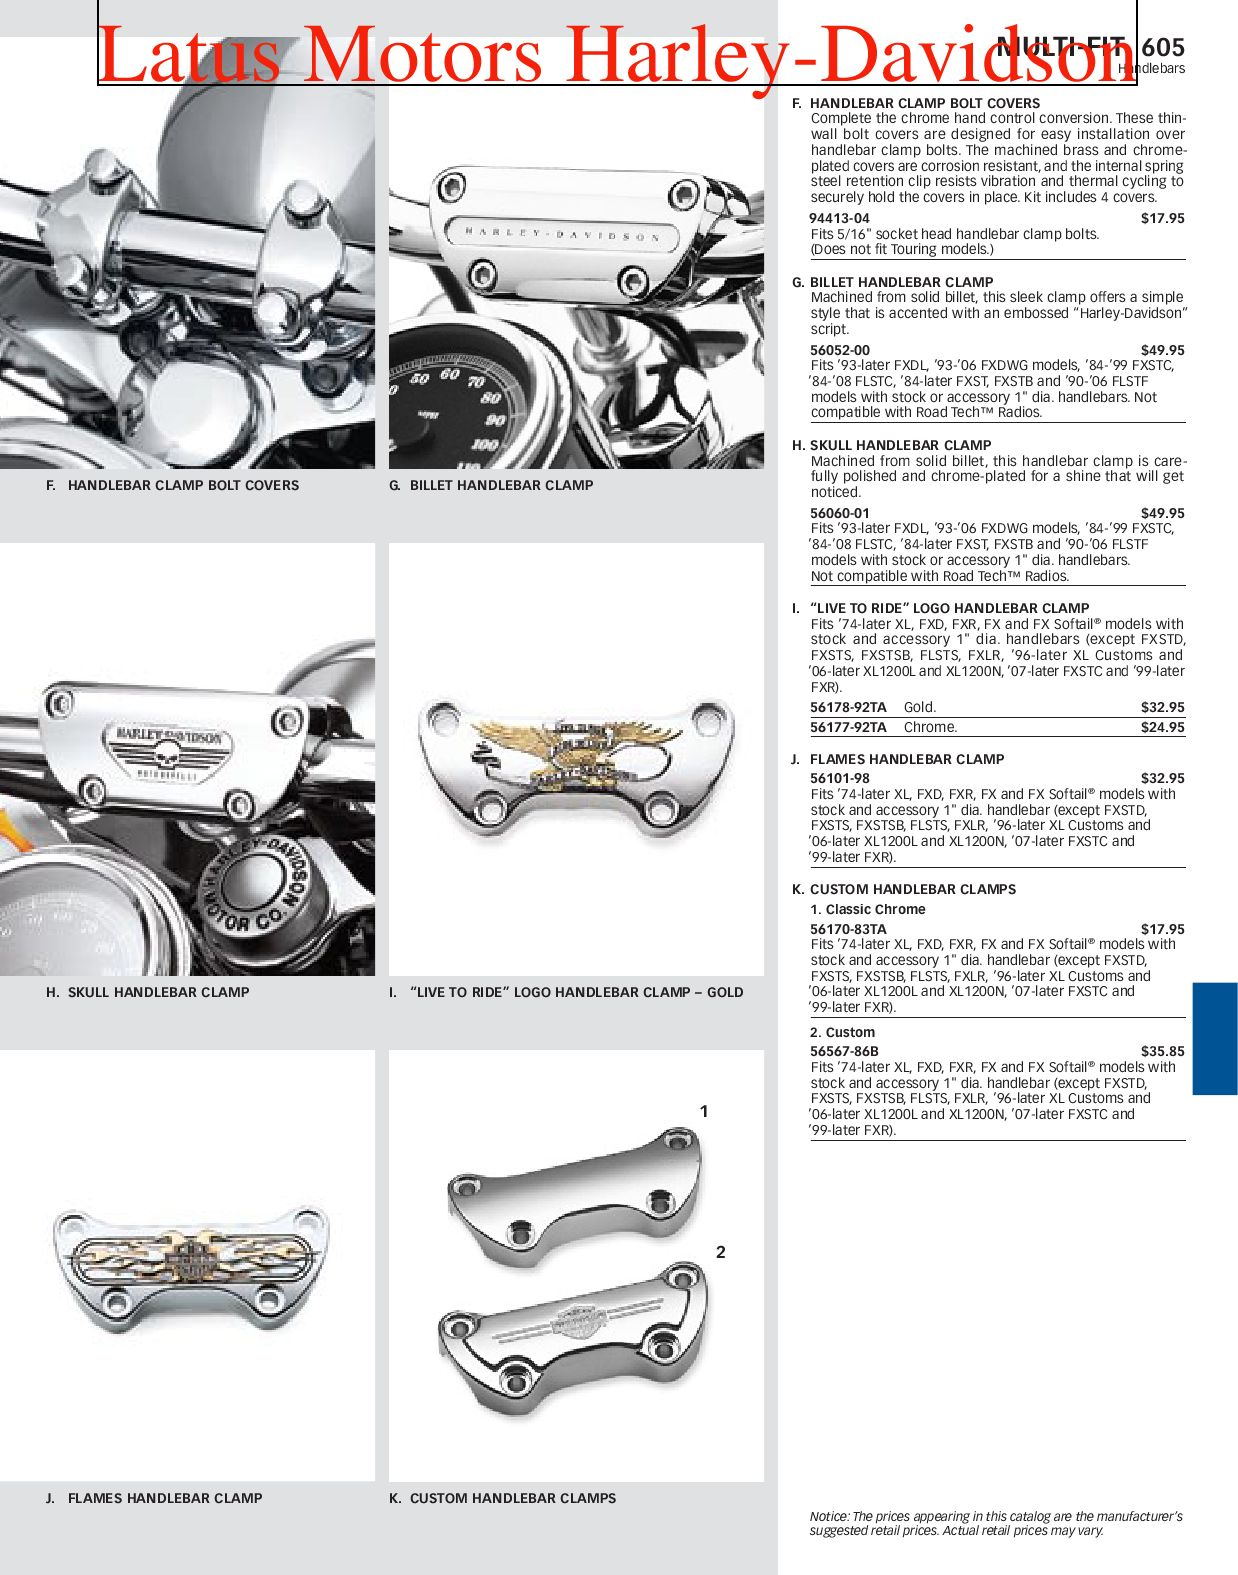 Harley-Davidson Multi Fit Parts and Accessories Catalog by